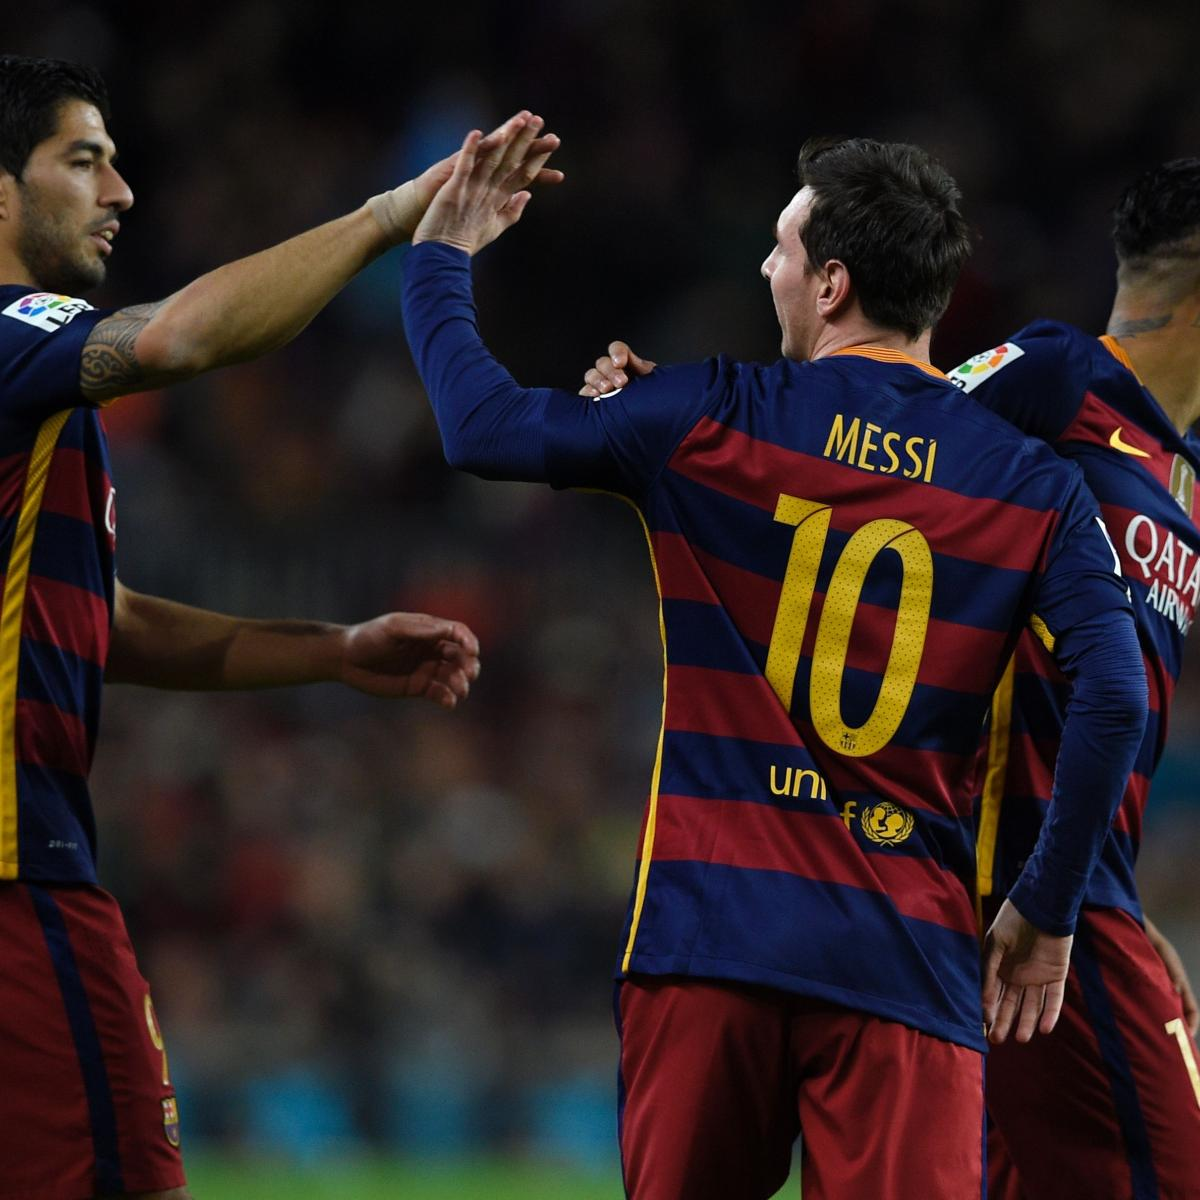 Barcelona Vs. Celta Vigo: Live Score, Highlights From La